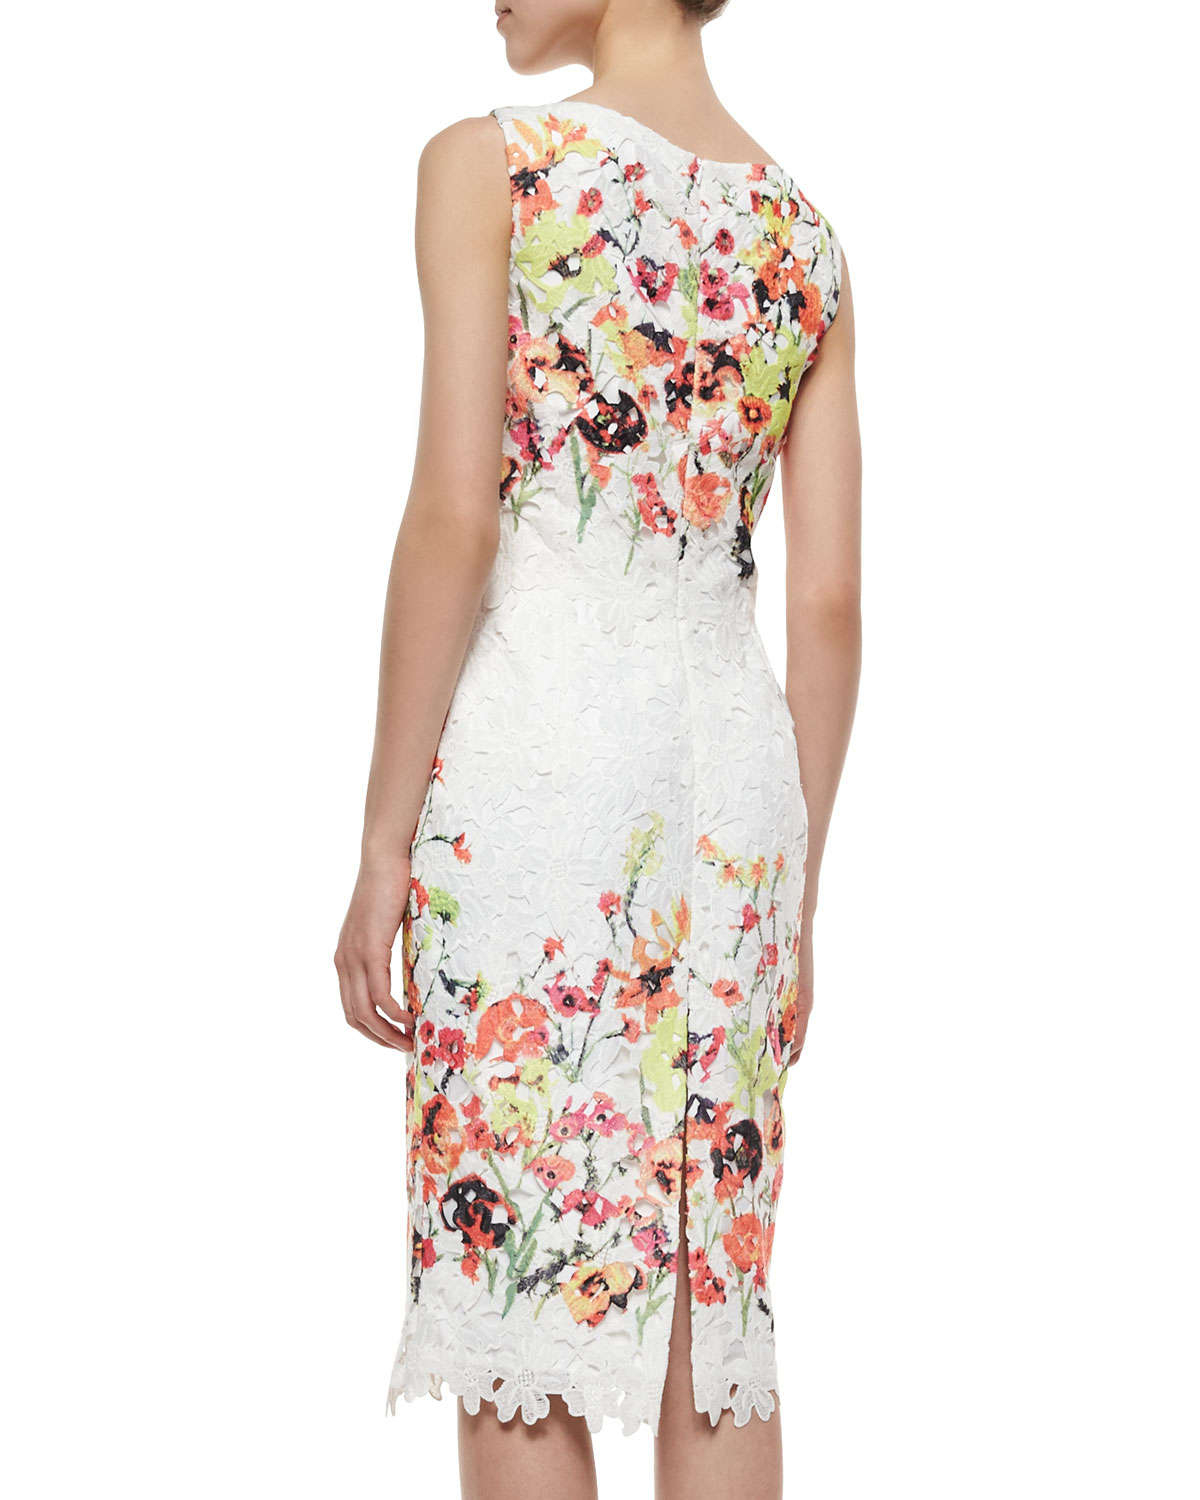 b1065406e82674 Lyst - Badgley Mischka Sleeveless Floral-Embroidered Lace Dress